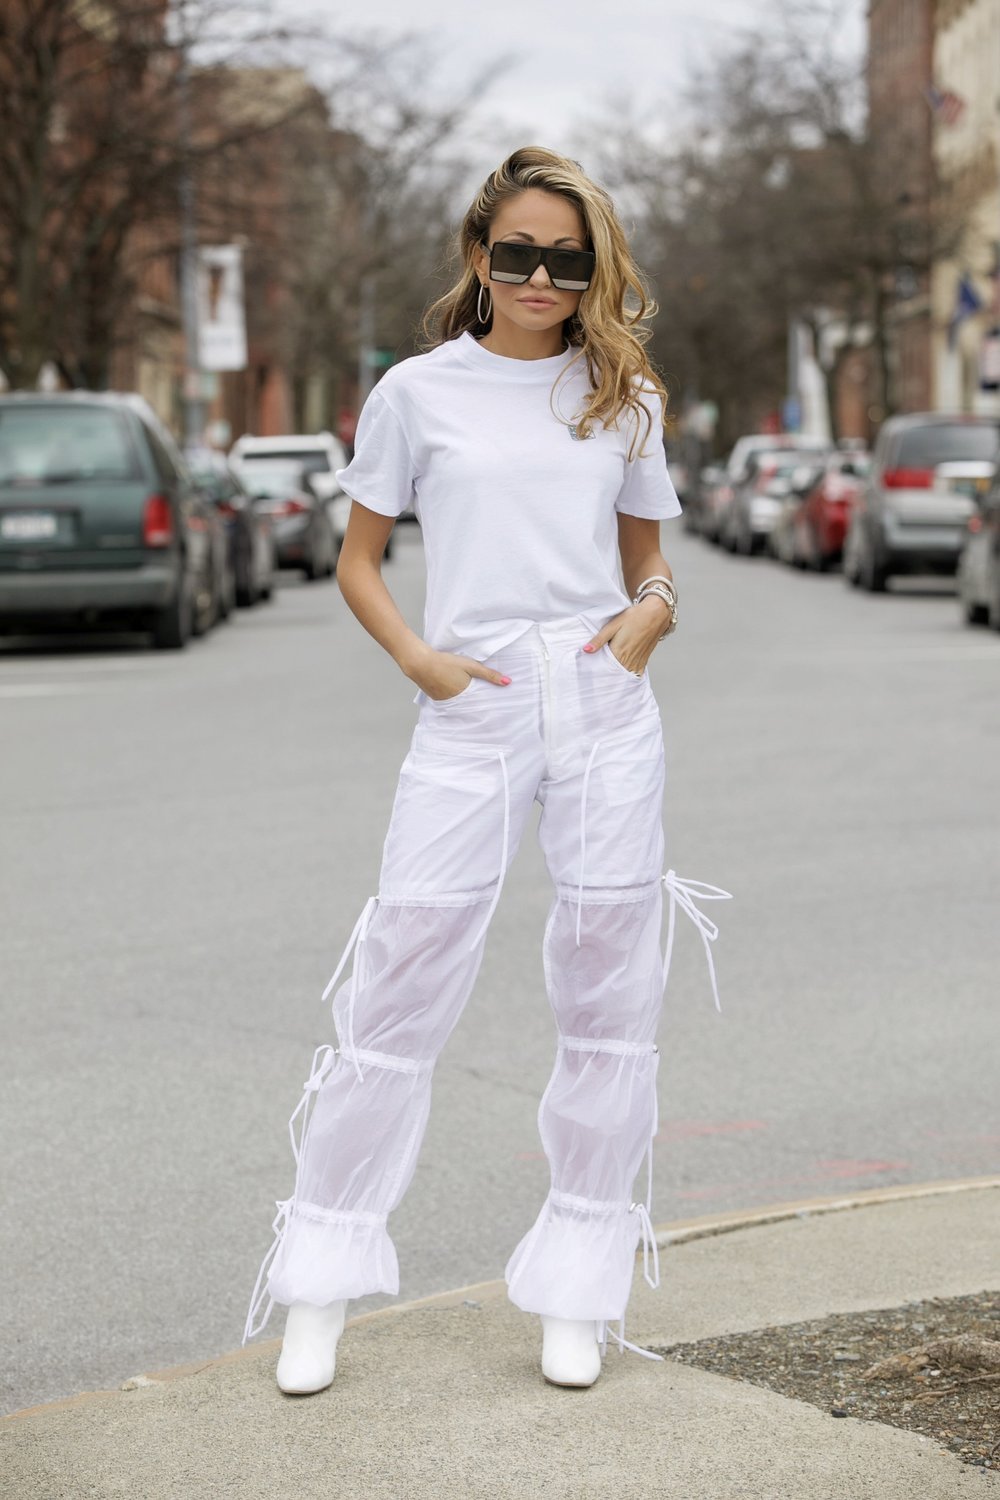 Tee: Kith  via Netaporter|Pants: Blindness |Boots: Manolo Blahnik |Sunnies: Saint Laurent     Dino Petrocelli Photography